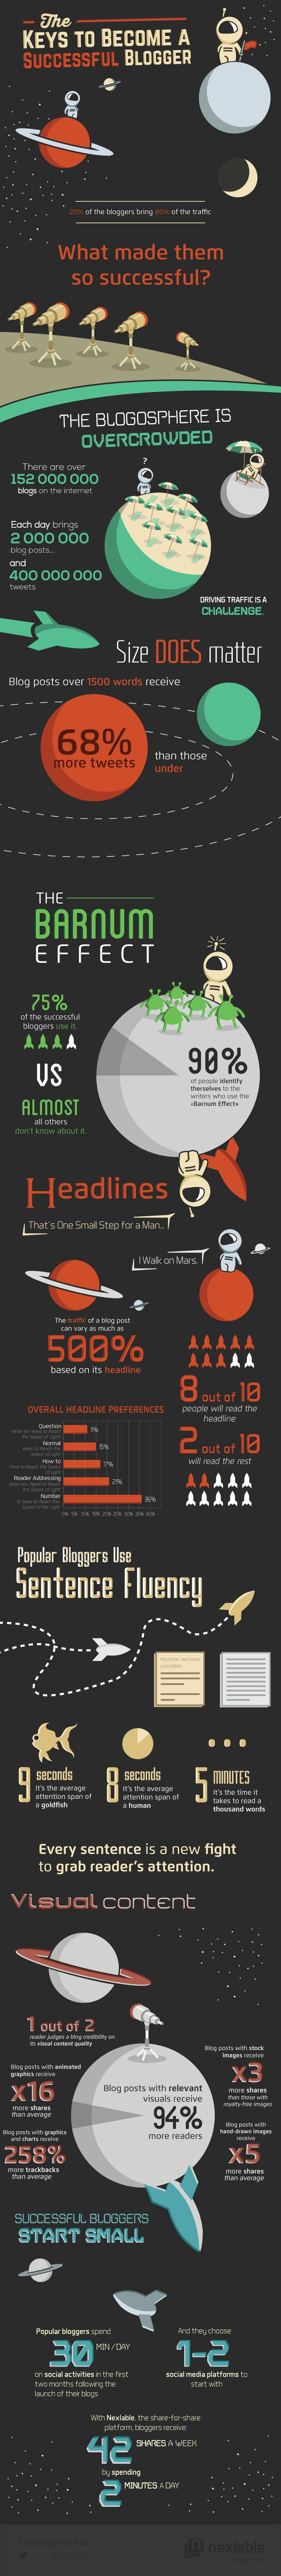 this infographic shows you how to stand out in the blogging world